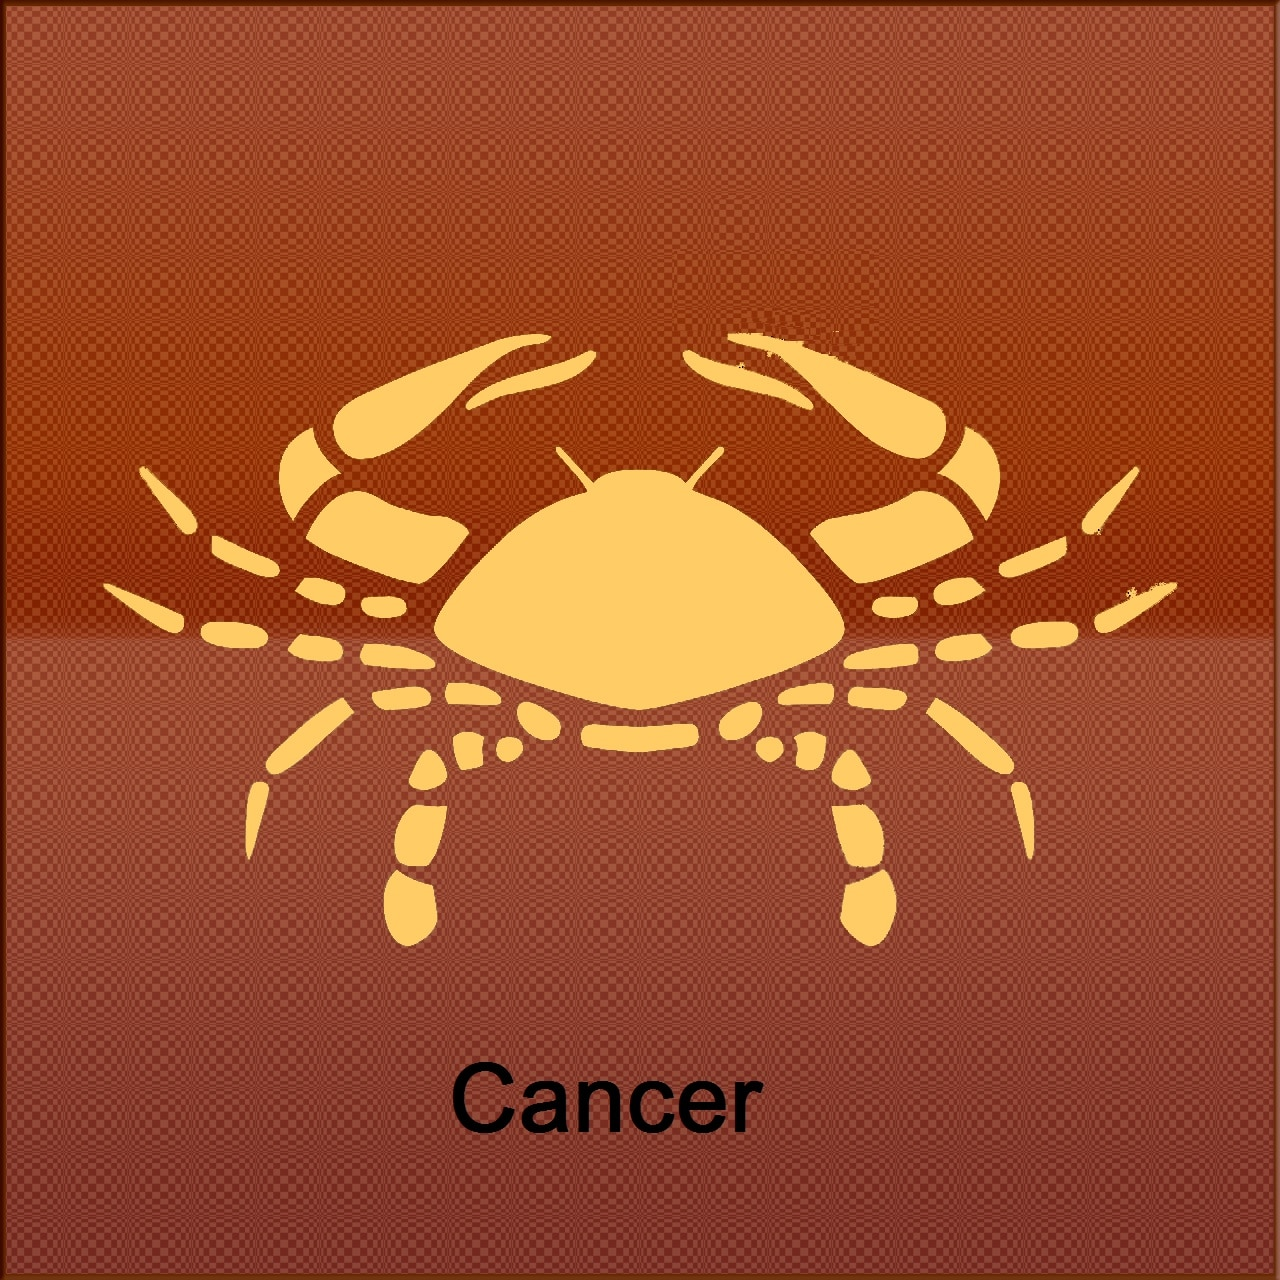 Cancer Zodiac Sign General Characteristic And Significance Vedic